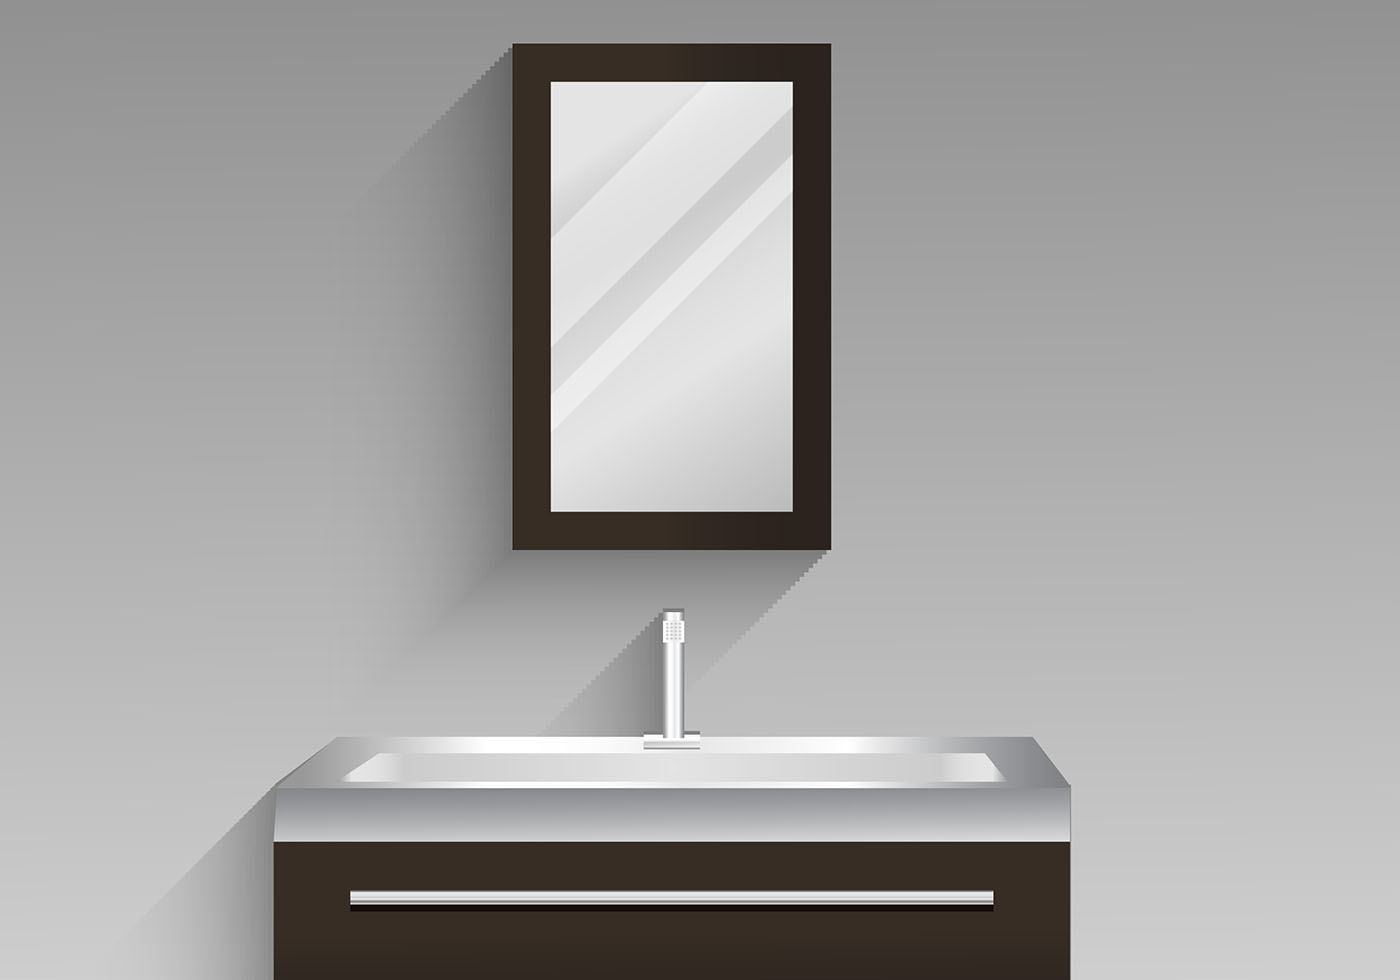 Bathroom Cabinet Vector Design Illustration Download Free Vector Art Stock Graphics Amp Images